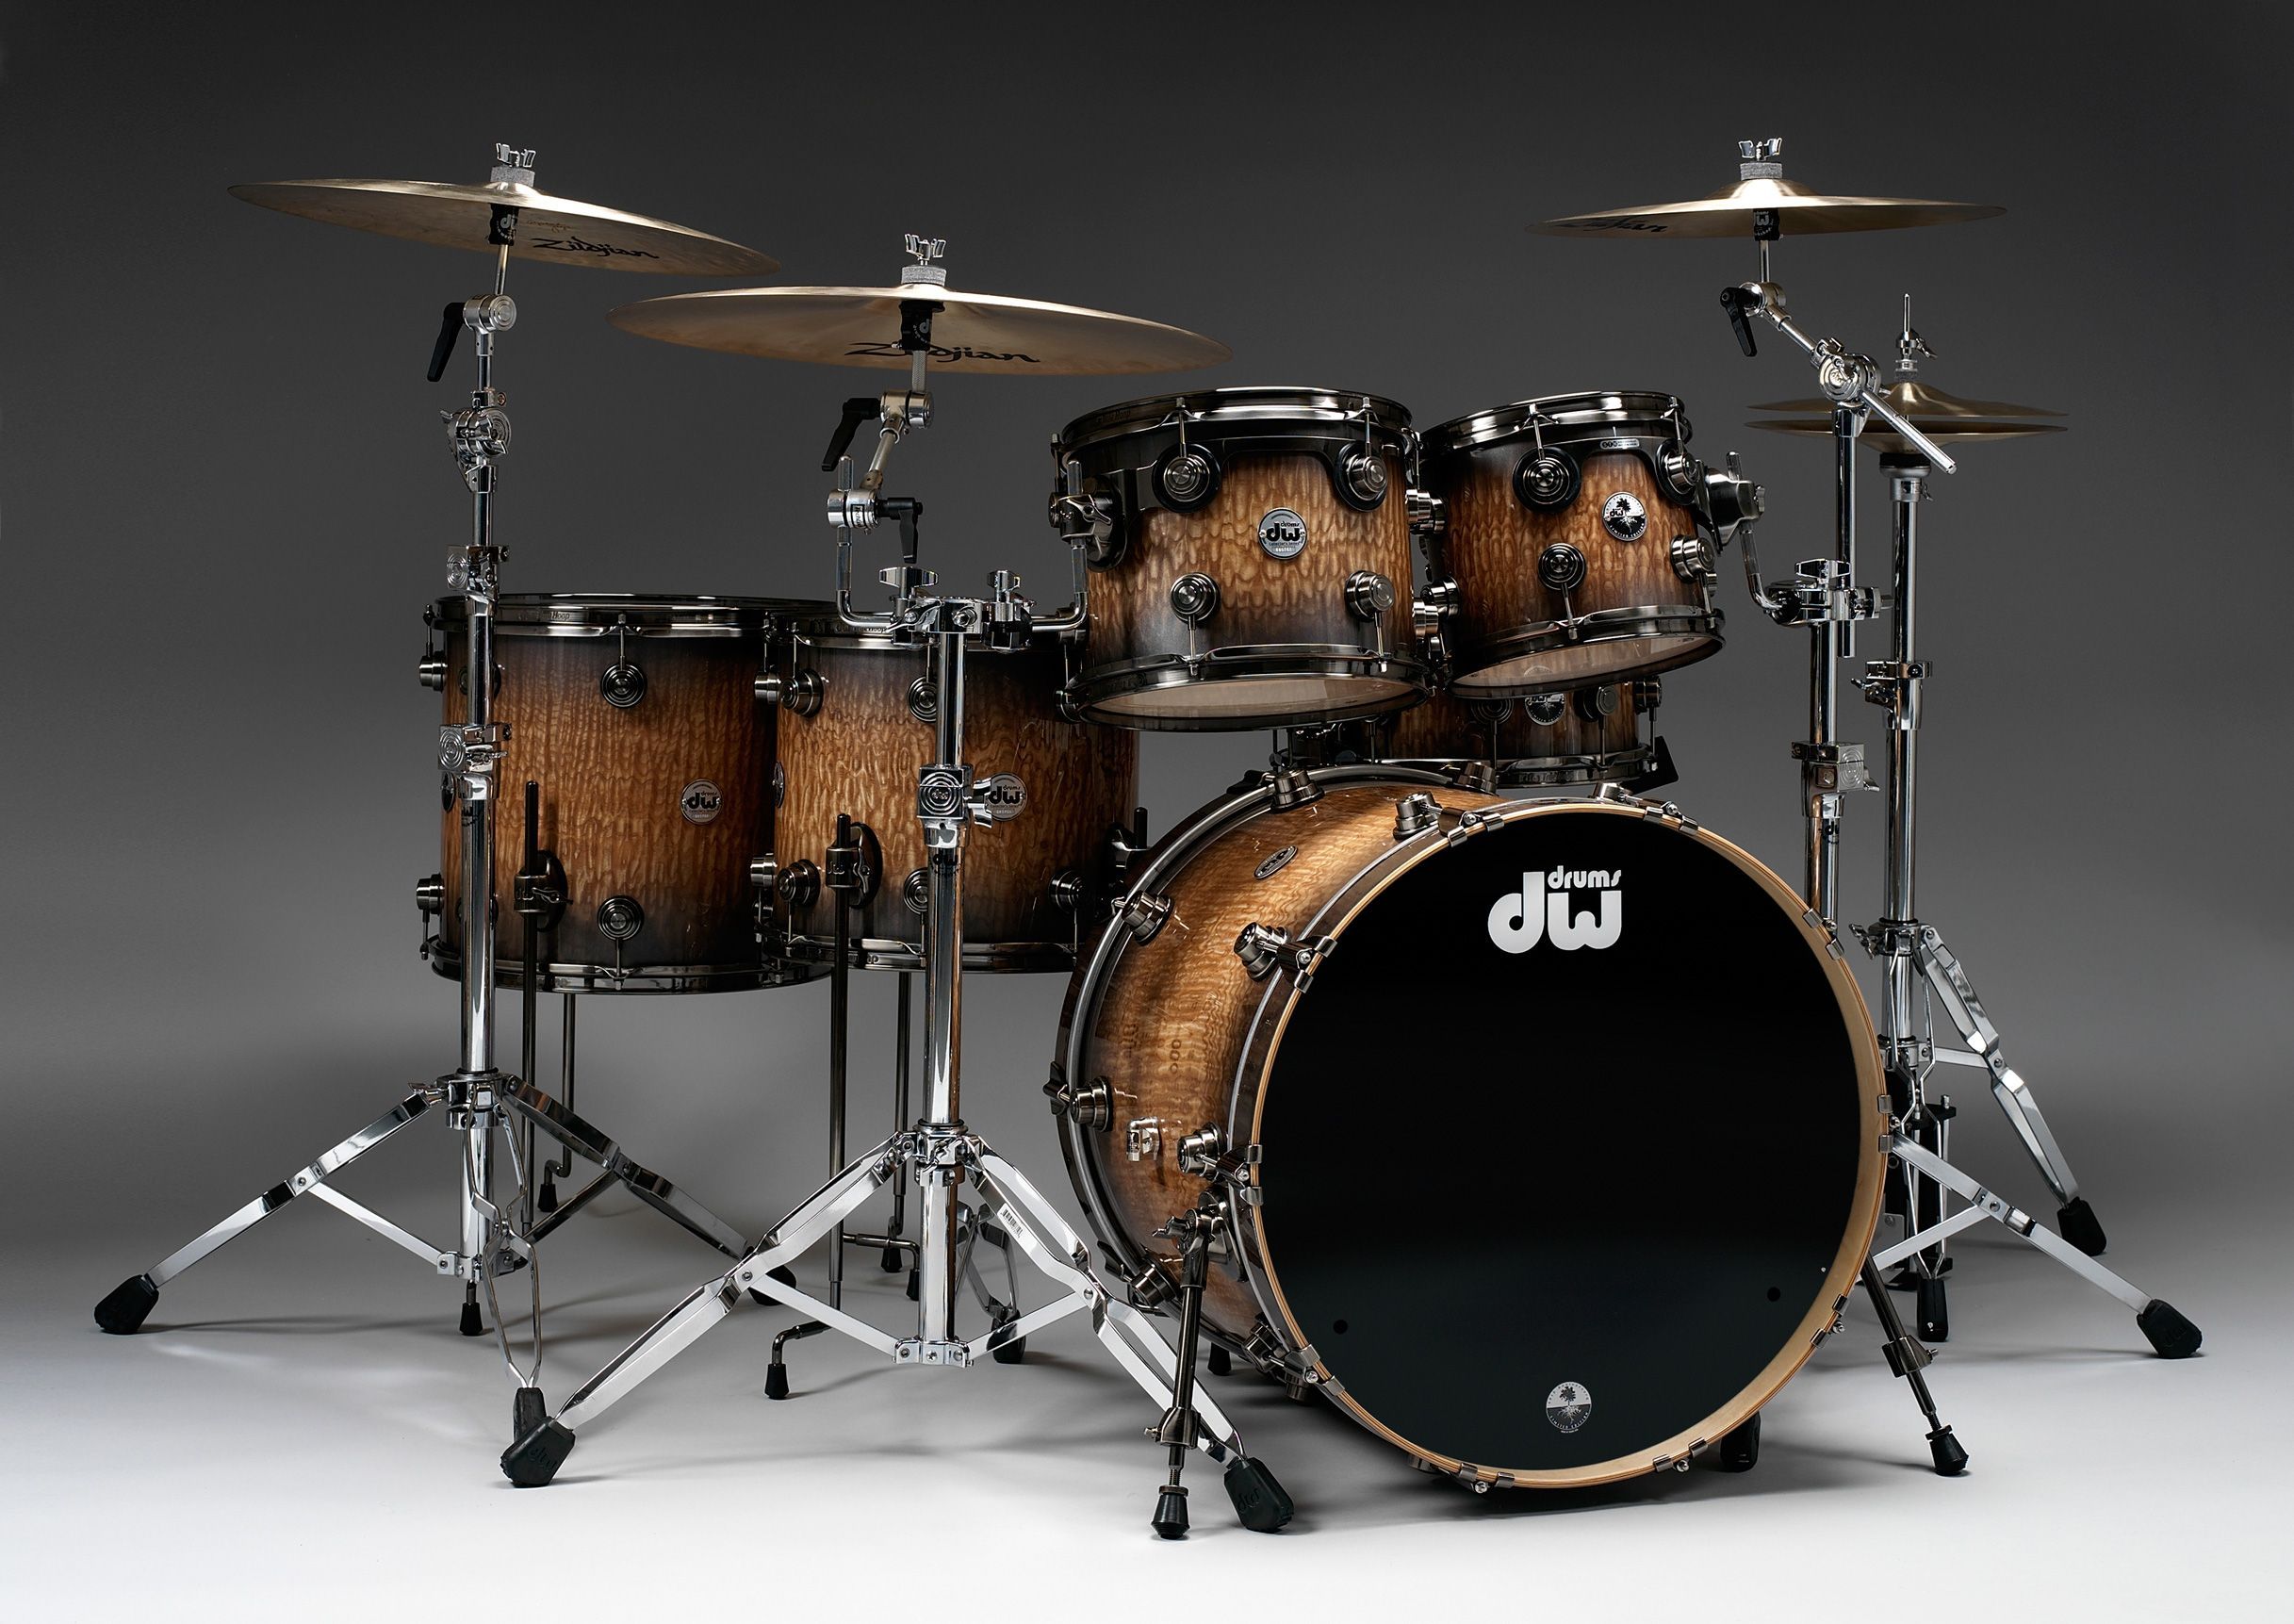 edf231fc6ba8 Limited Edition 40th Anniversary Kit - Metallic Pewter to Natural Lacquer  Burst over Exotic Tamo Ash with Pewter Hardware